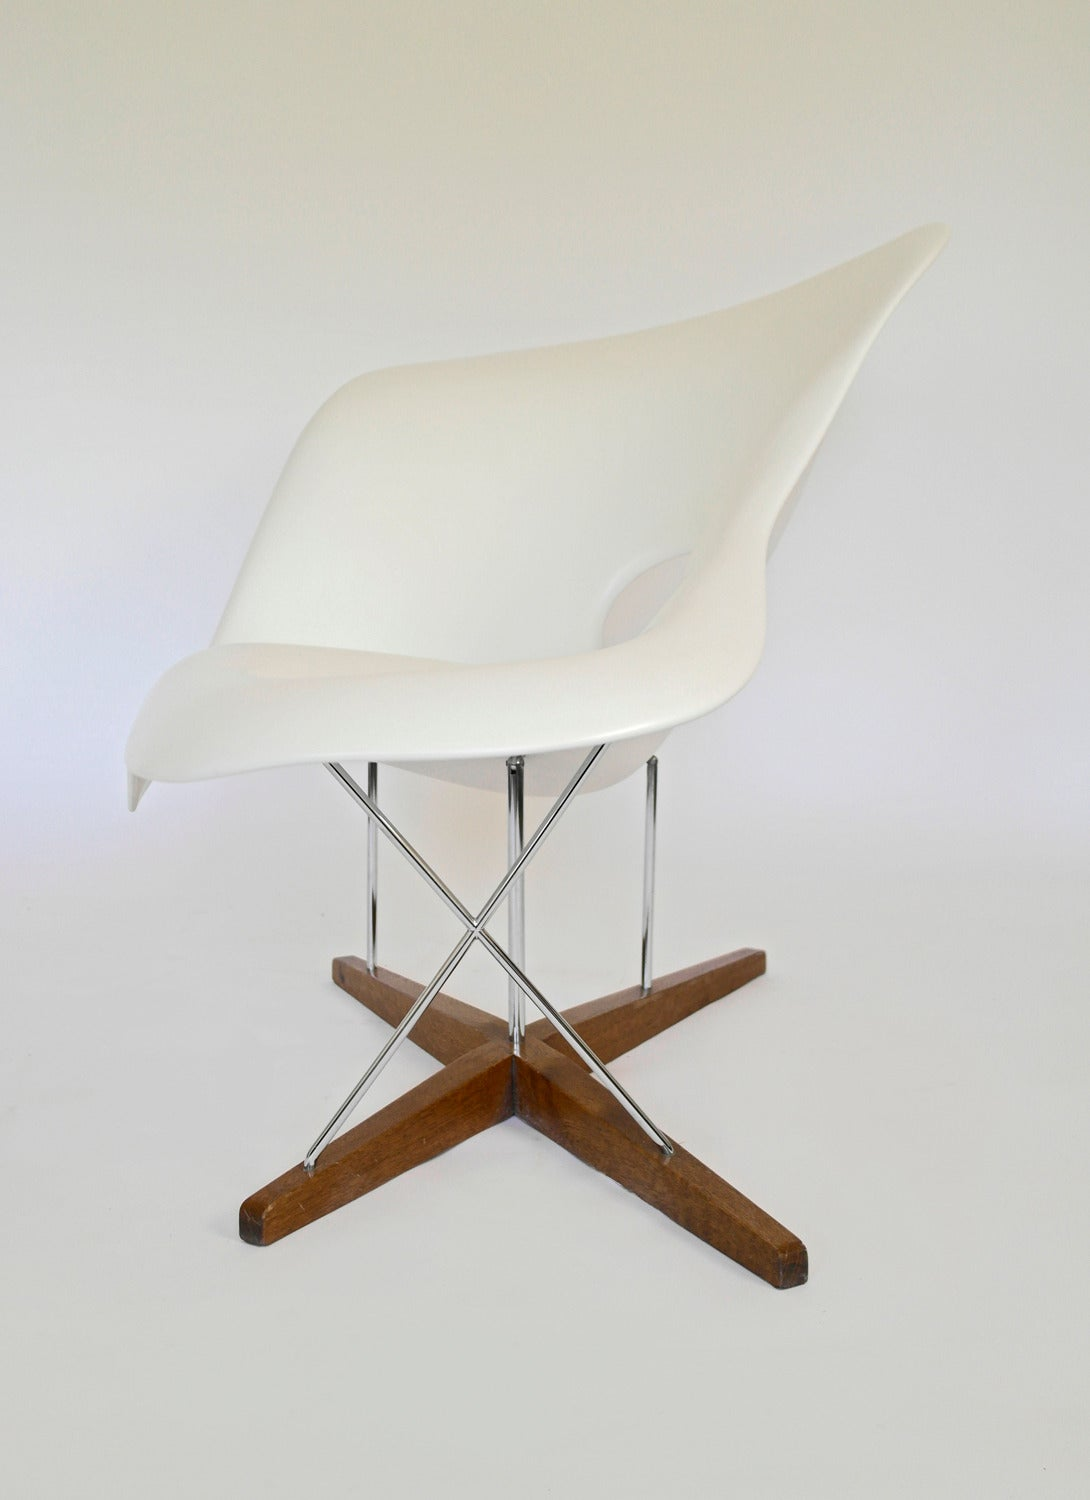 Vitra edition la chaise by charles and ray eames at 1stdibs for Chaise bascule eames vitra